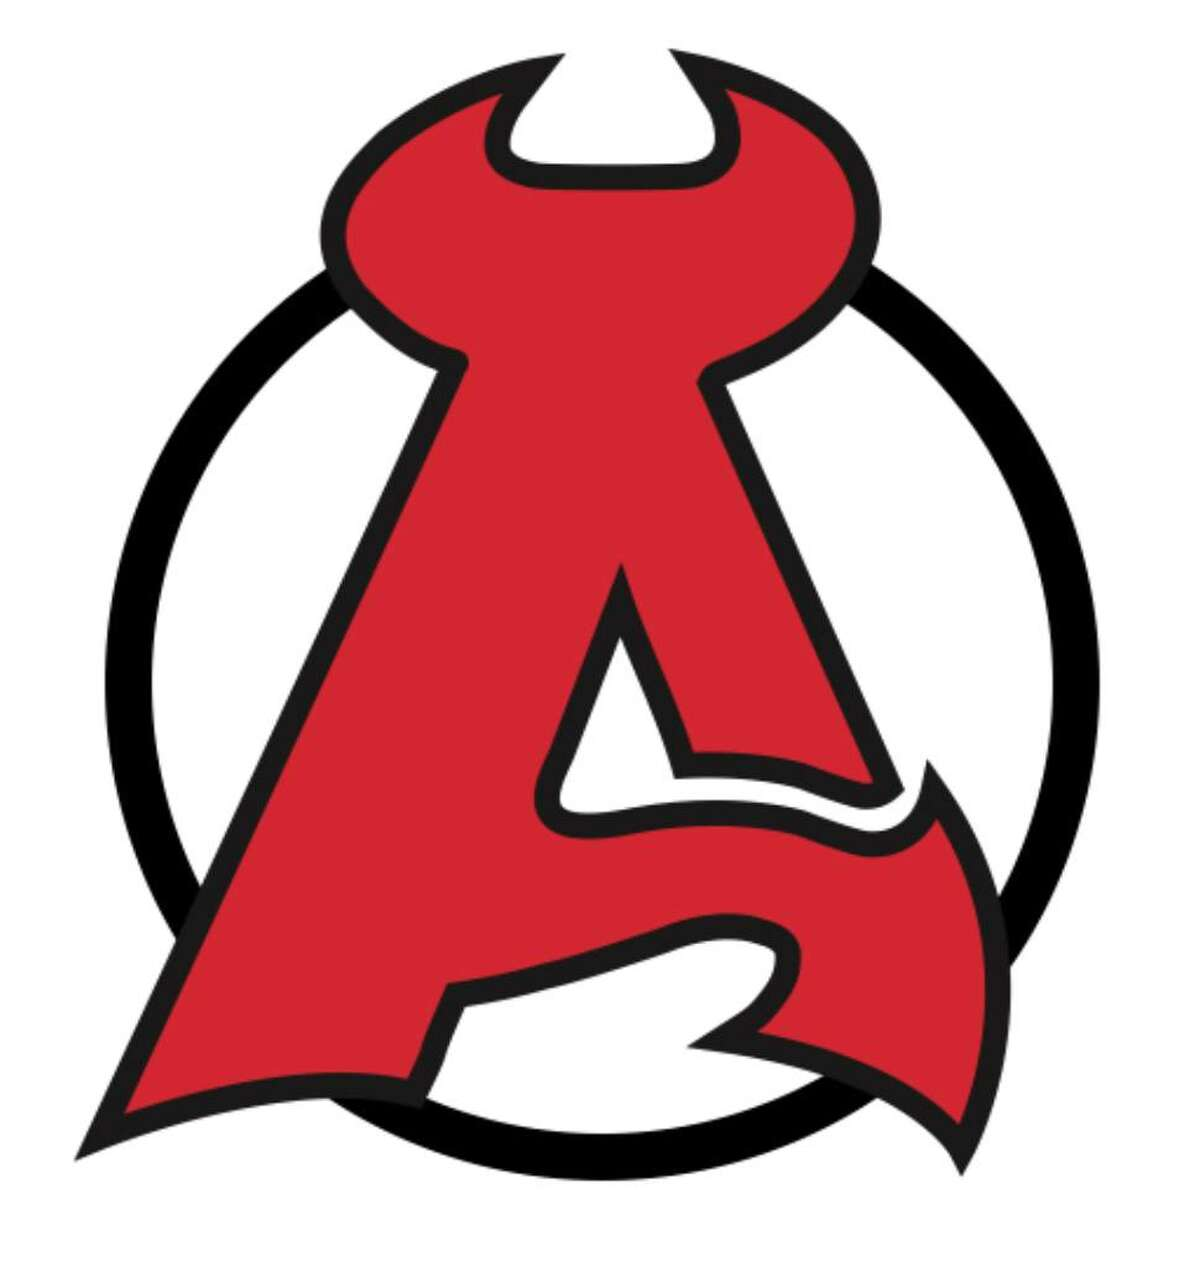 The new logo for the Albany Devils.